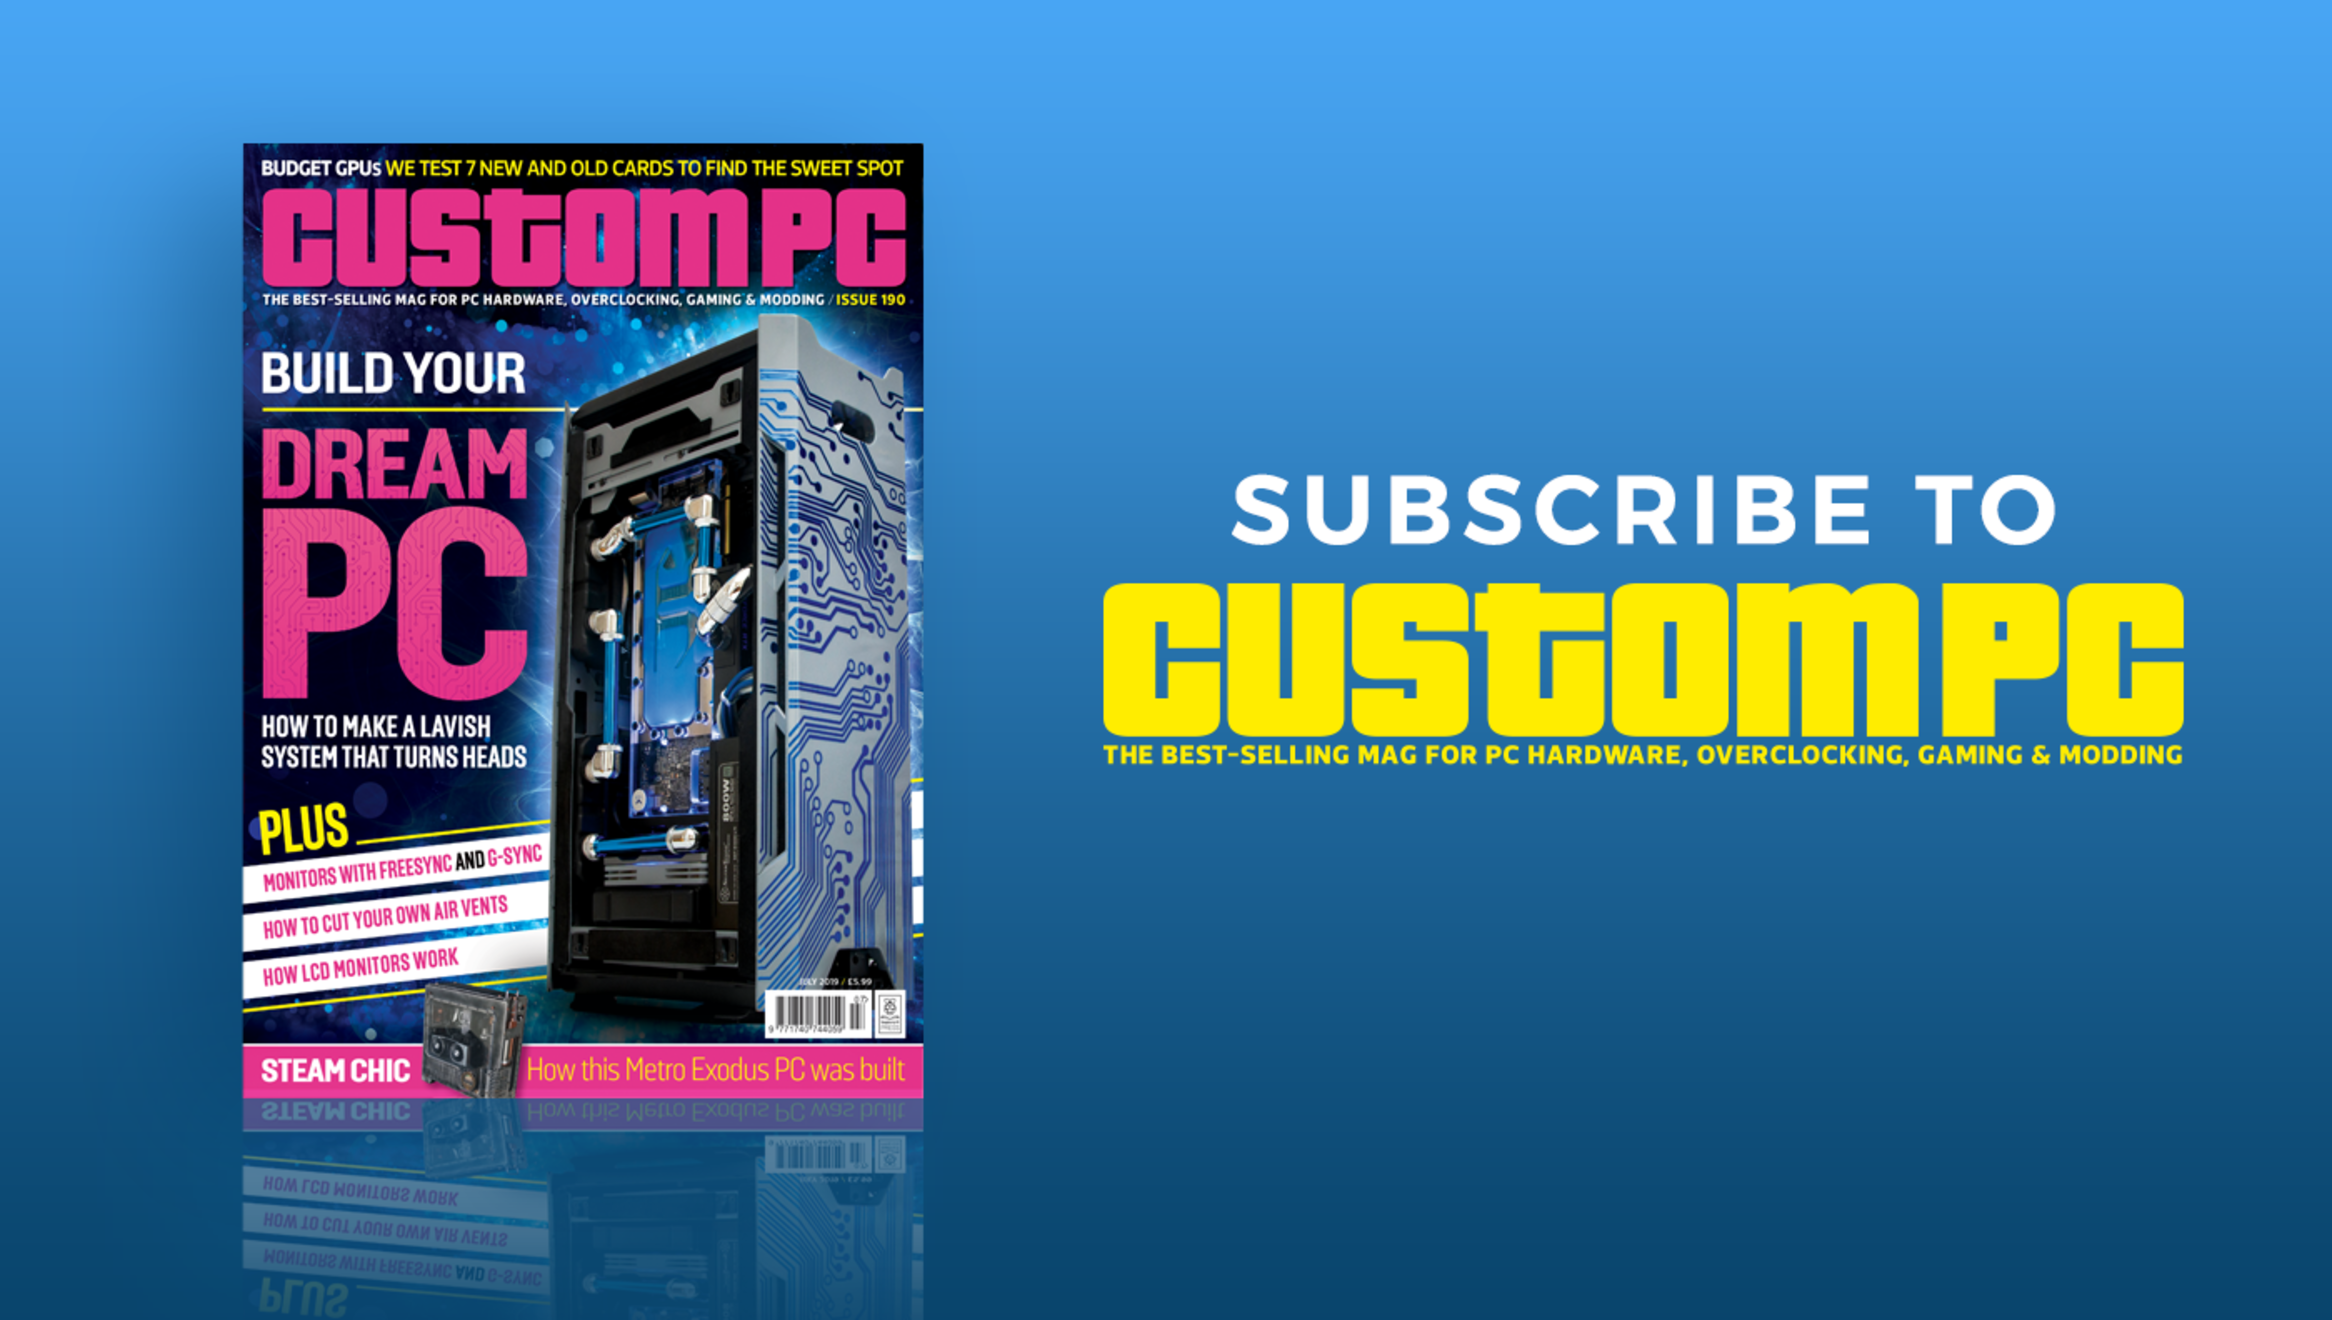 Subscribe to Custom PC magazine